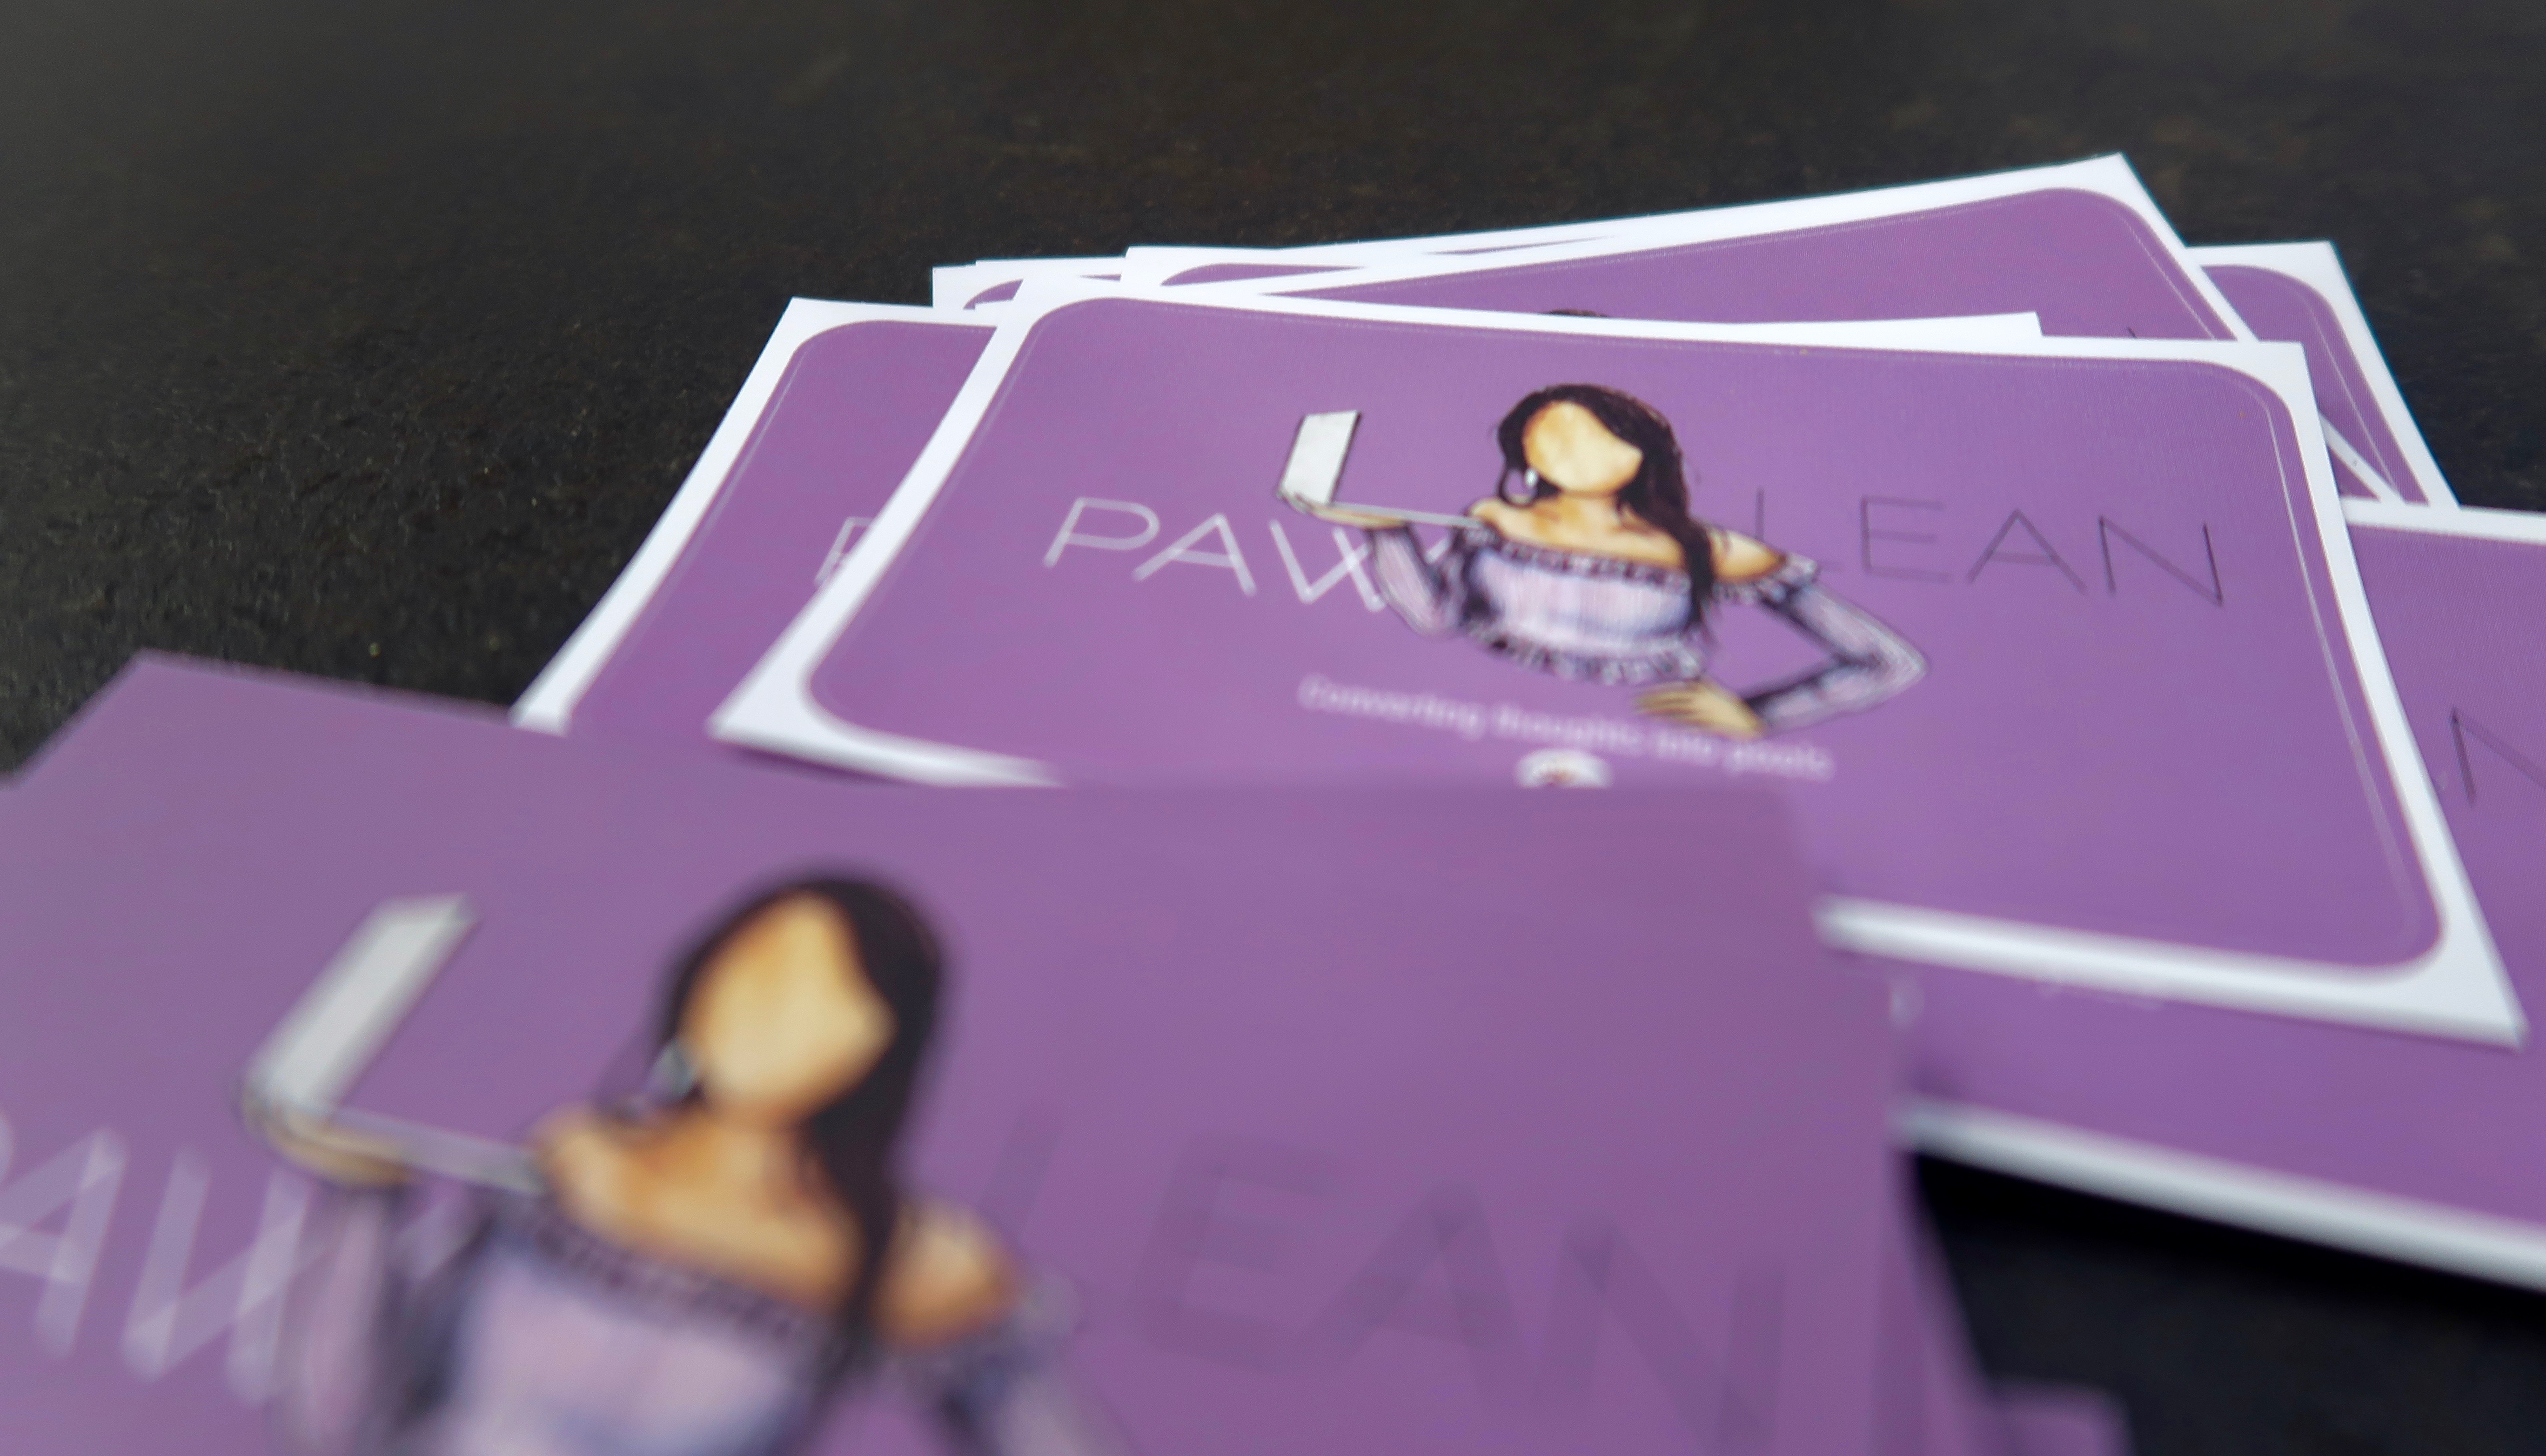 Pawlean stickers and business cards